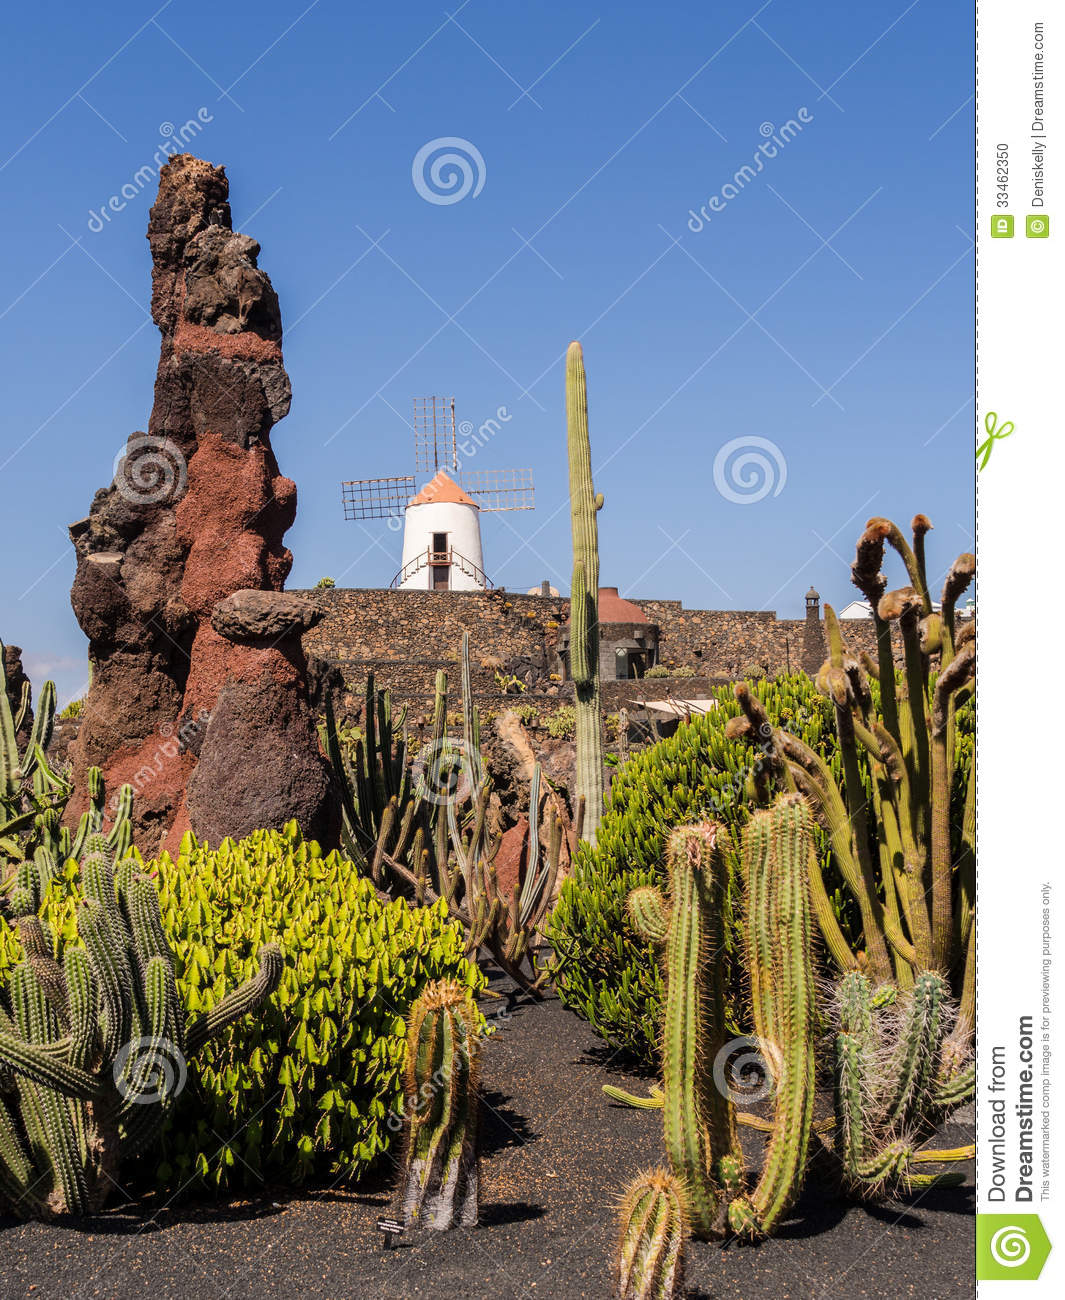 Jardin de cactus lanzarote les canaries photo stock for Jardin cactus lanzarote